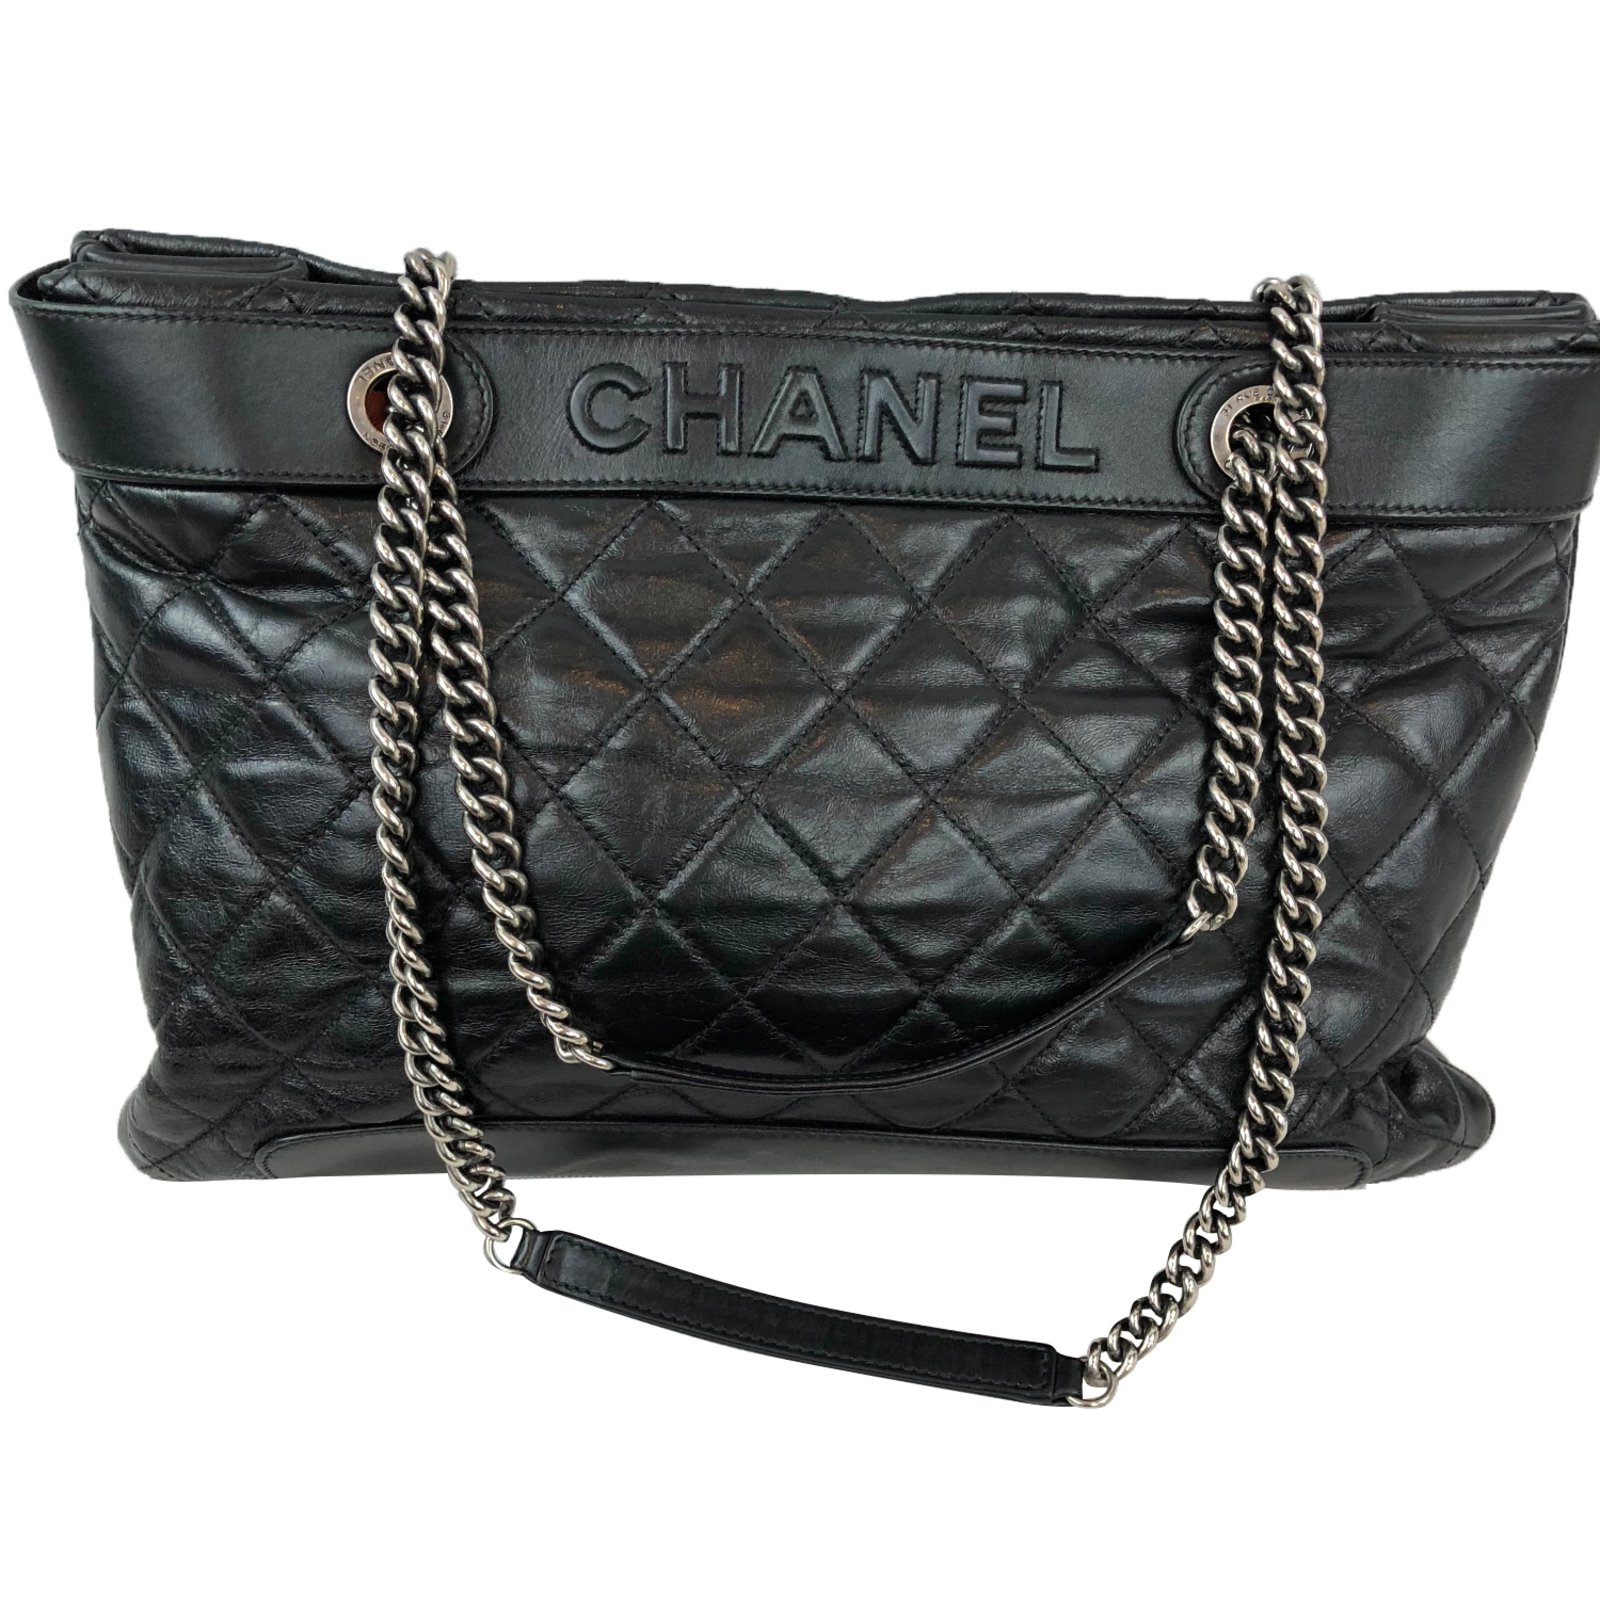 Chanel Handbags Handbags Leather Black ref.78325 - Joli Closet c177dd814c640